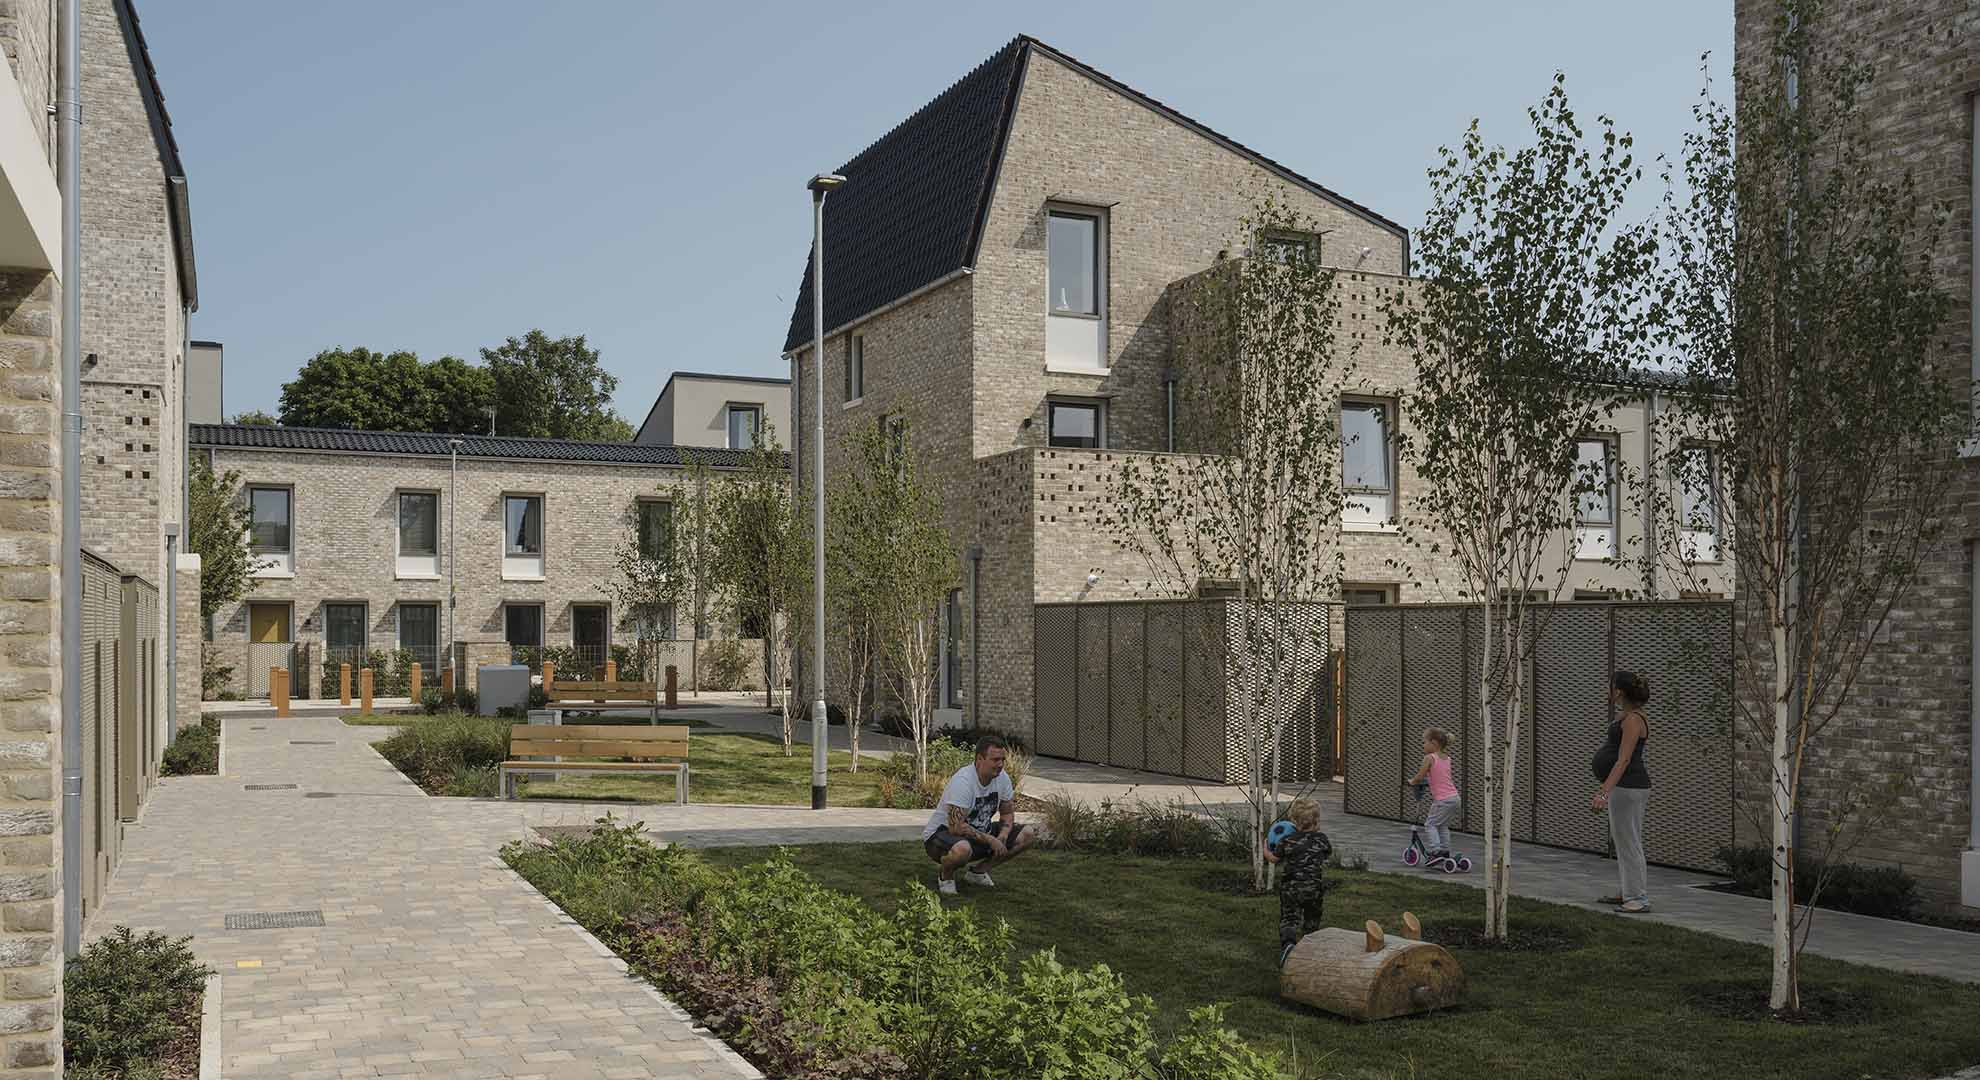 Goldsmith Street social housing, Norwich, UK, Mikhail Riches with Cathy Hawley.